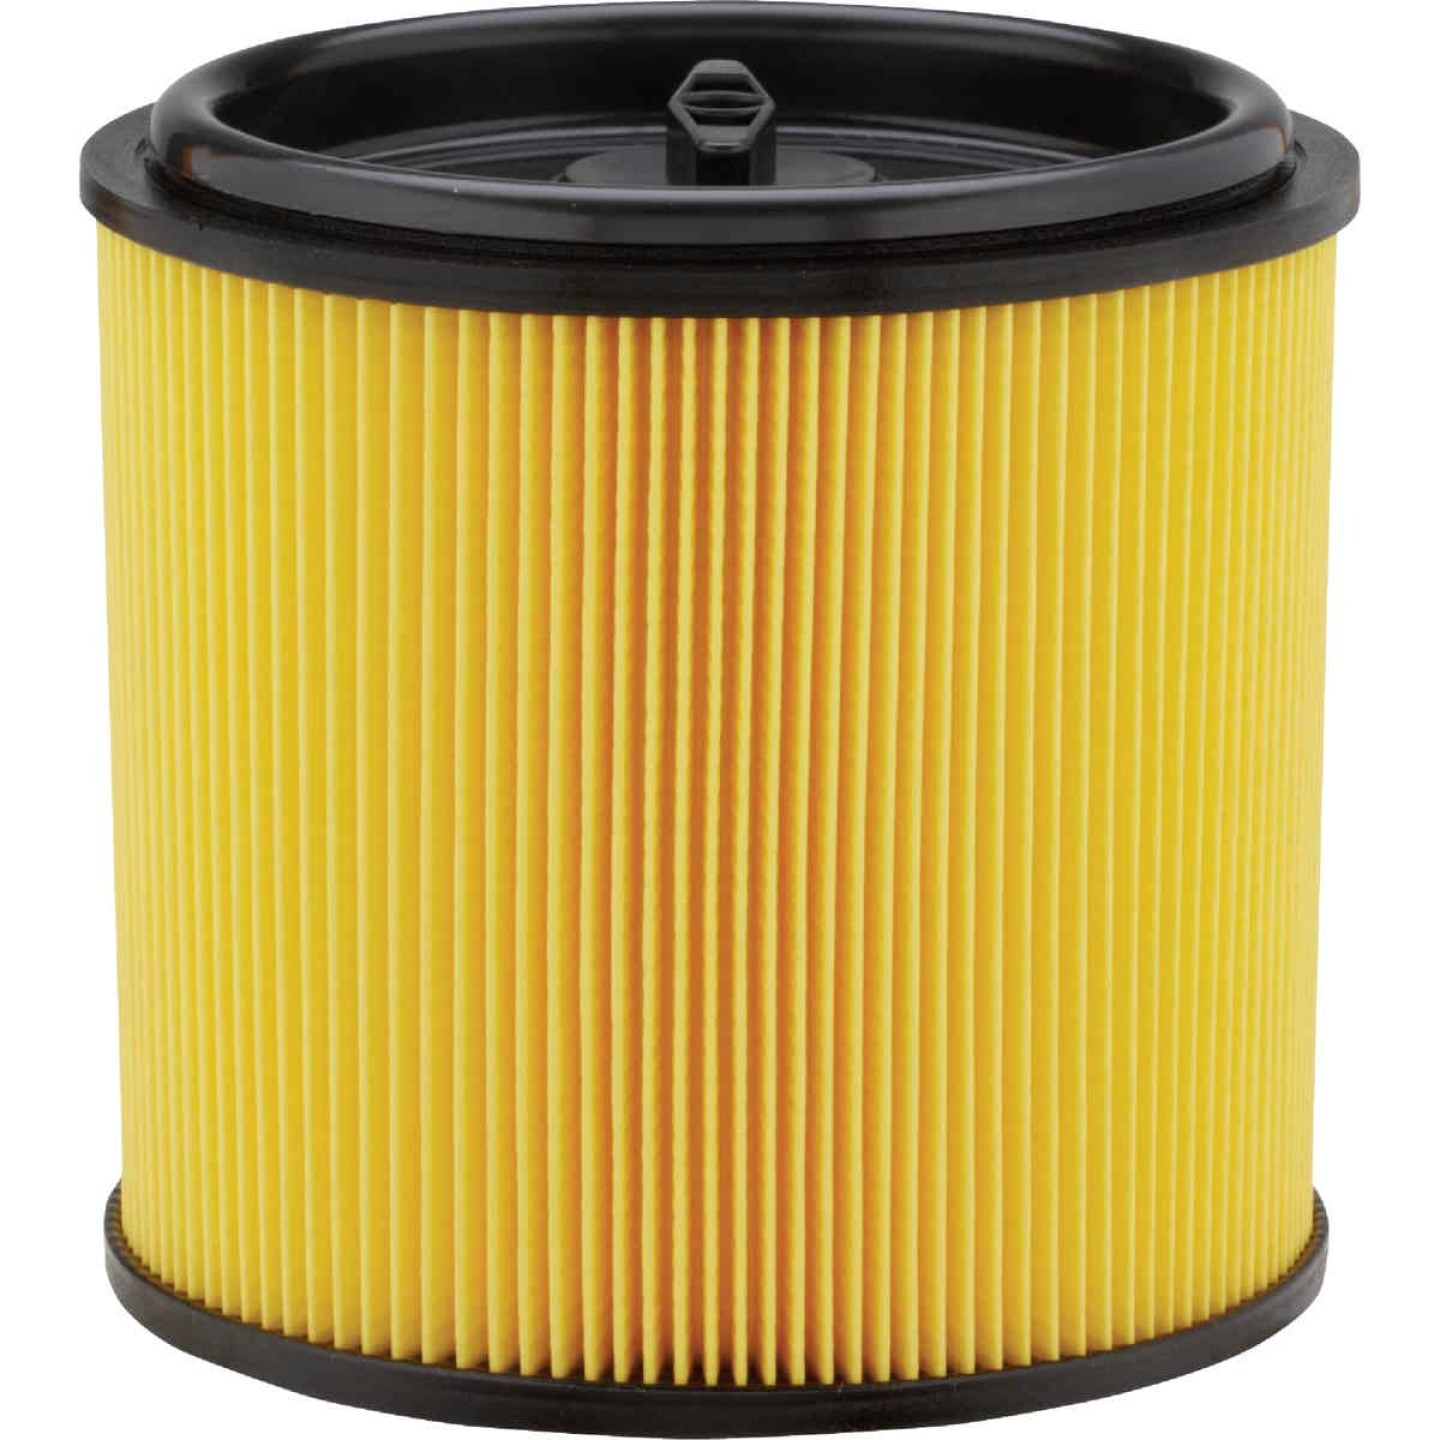 Channellock Cartridge Standard 5 to 20 Gal. Vacuum Filter Image 1